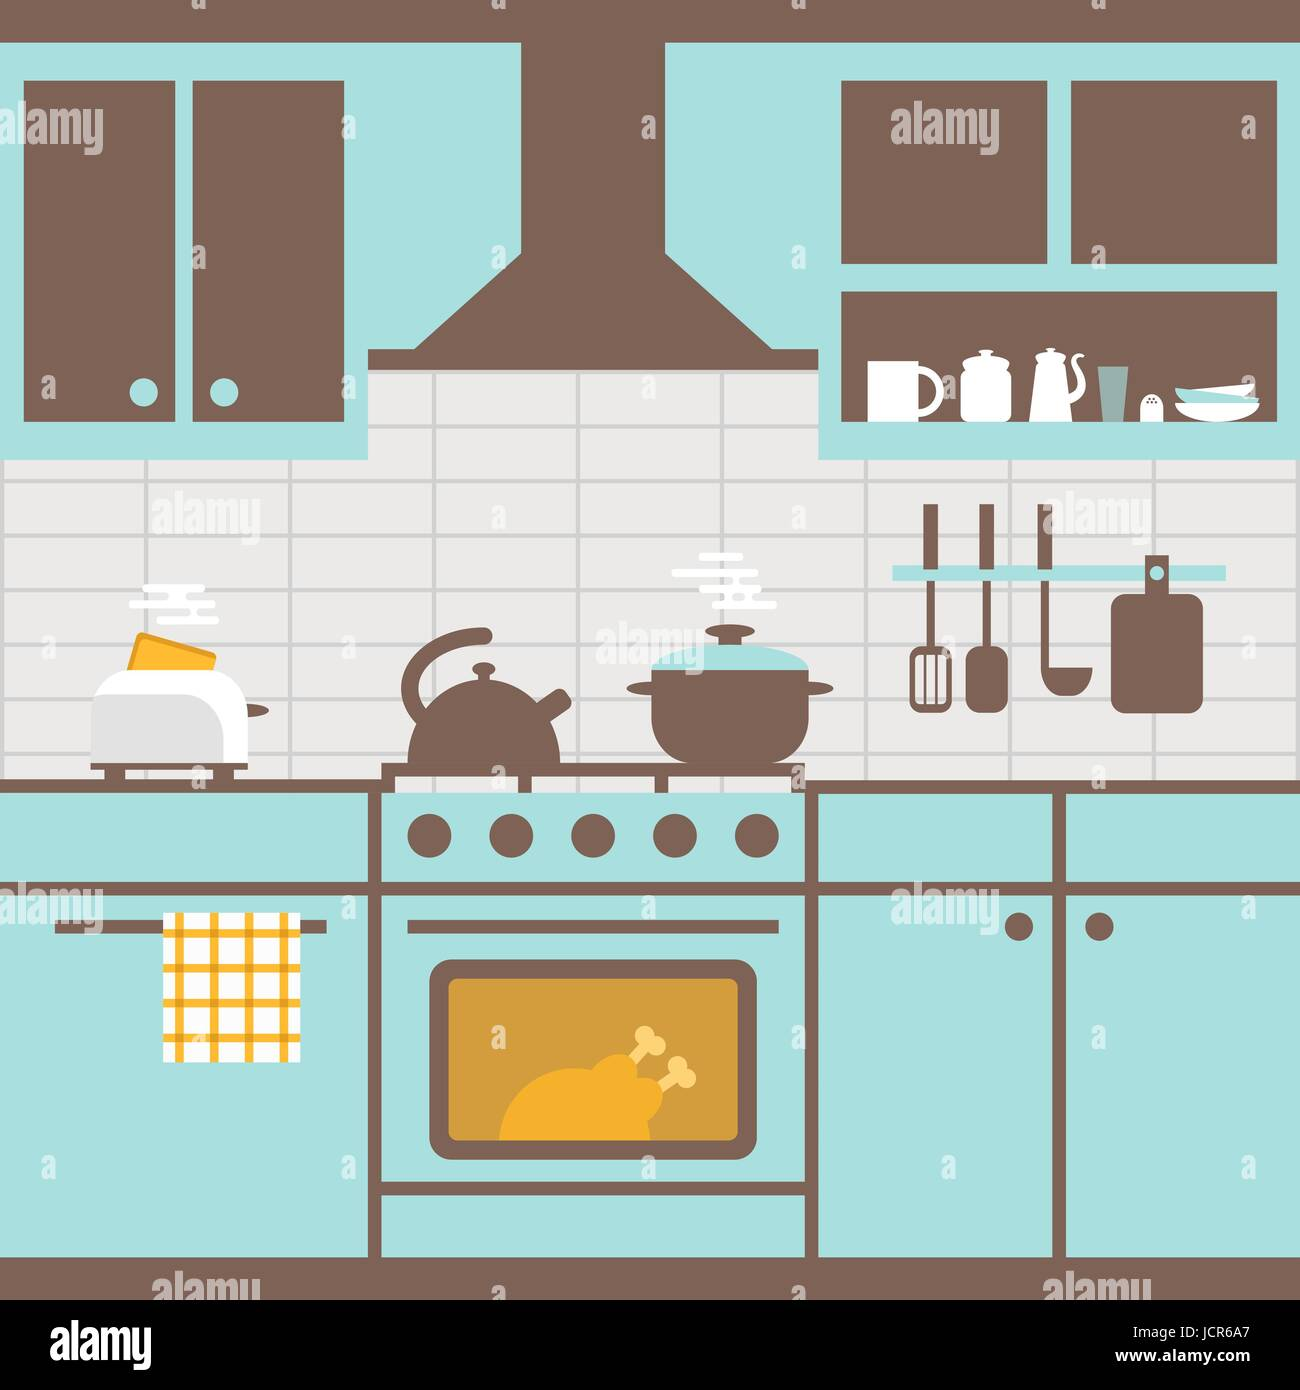 Vector illustration of kitchen with furniture. Kitchen utensils,cooker, kitchen furniture, toaster. Food cooking - Stock Vector